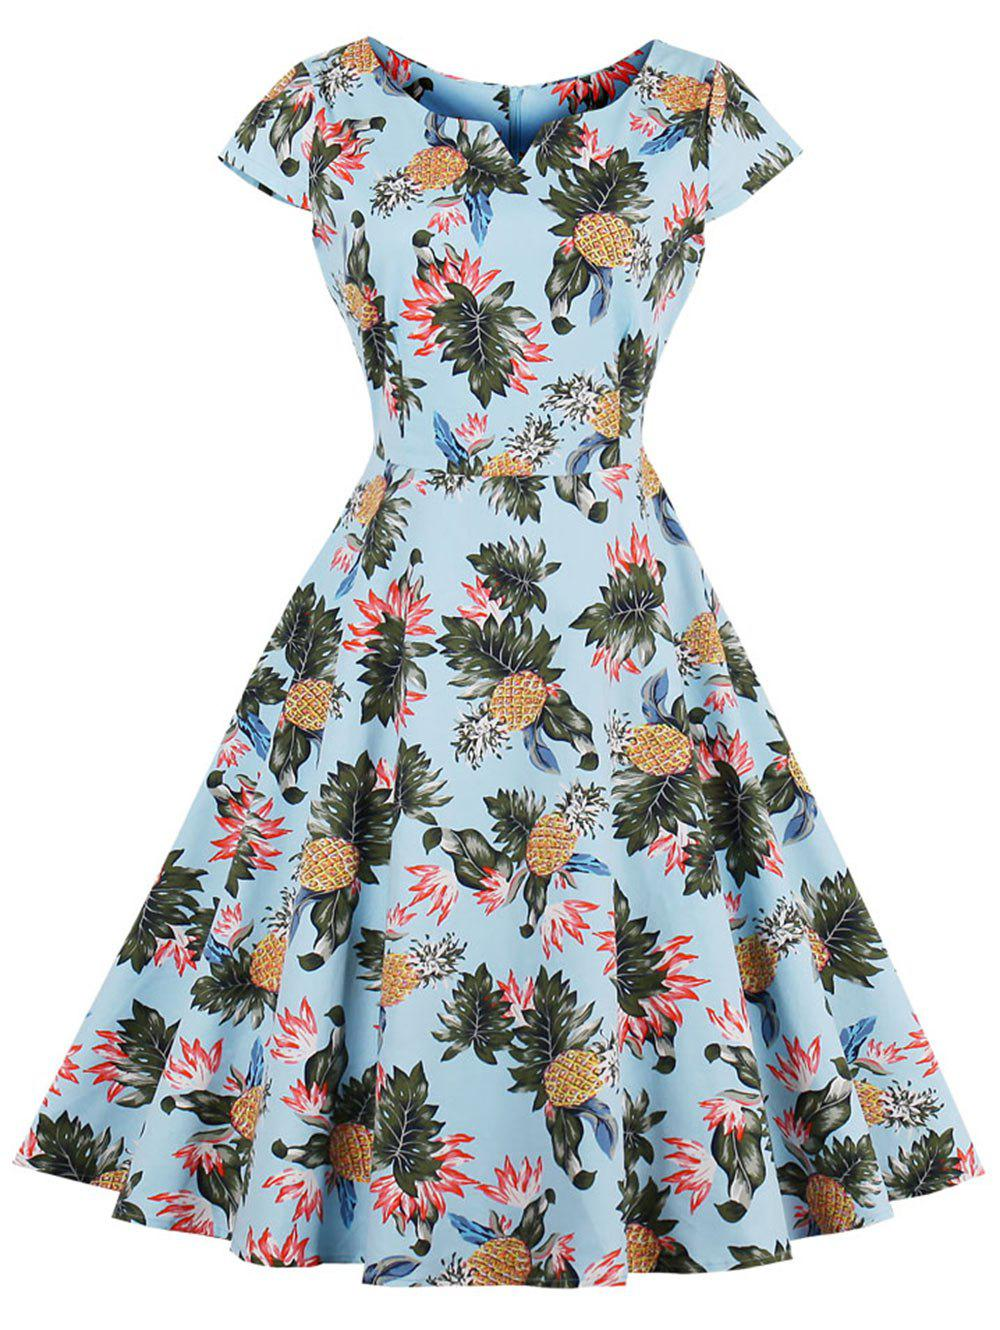 504cc355955 2019 Pineapple Print A Line Vintage Plus Size Dress